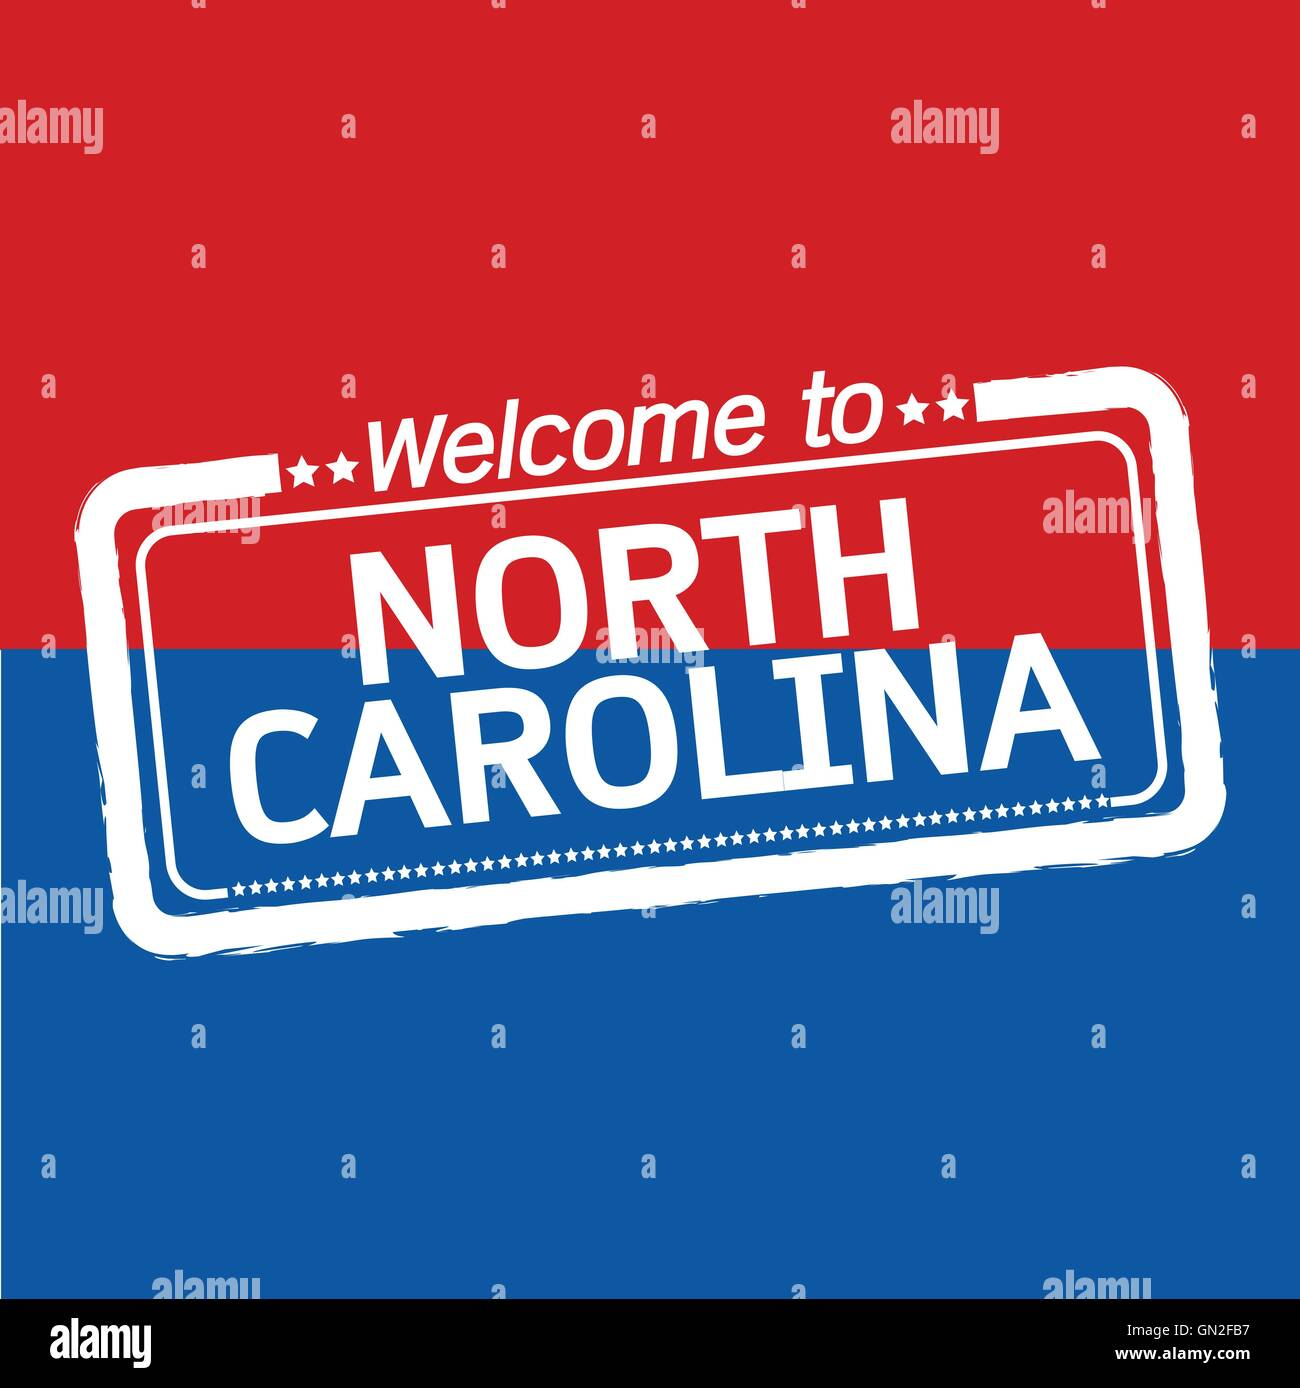 Welcome to NORTH CAROLINA of US State illustration design Stock Vector